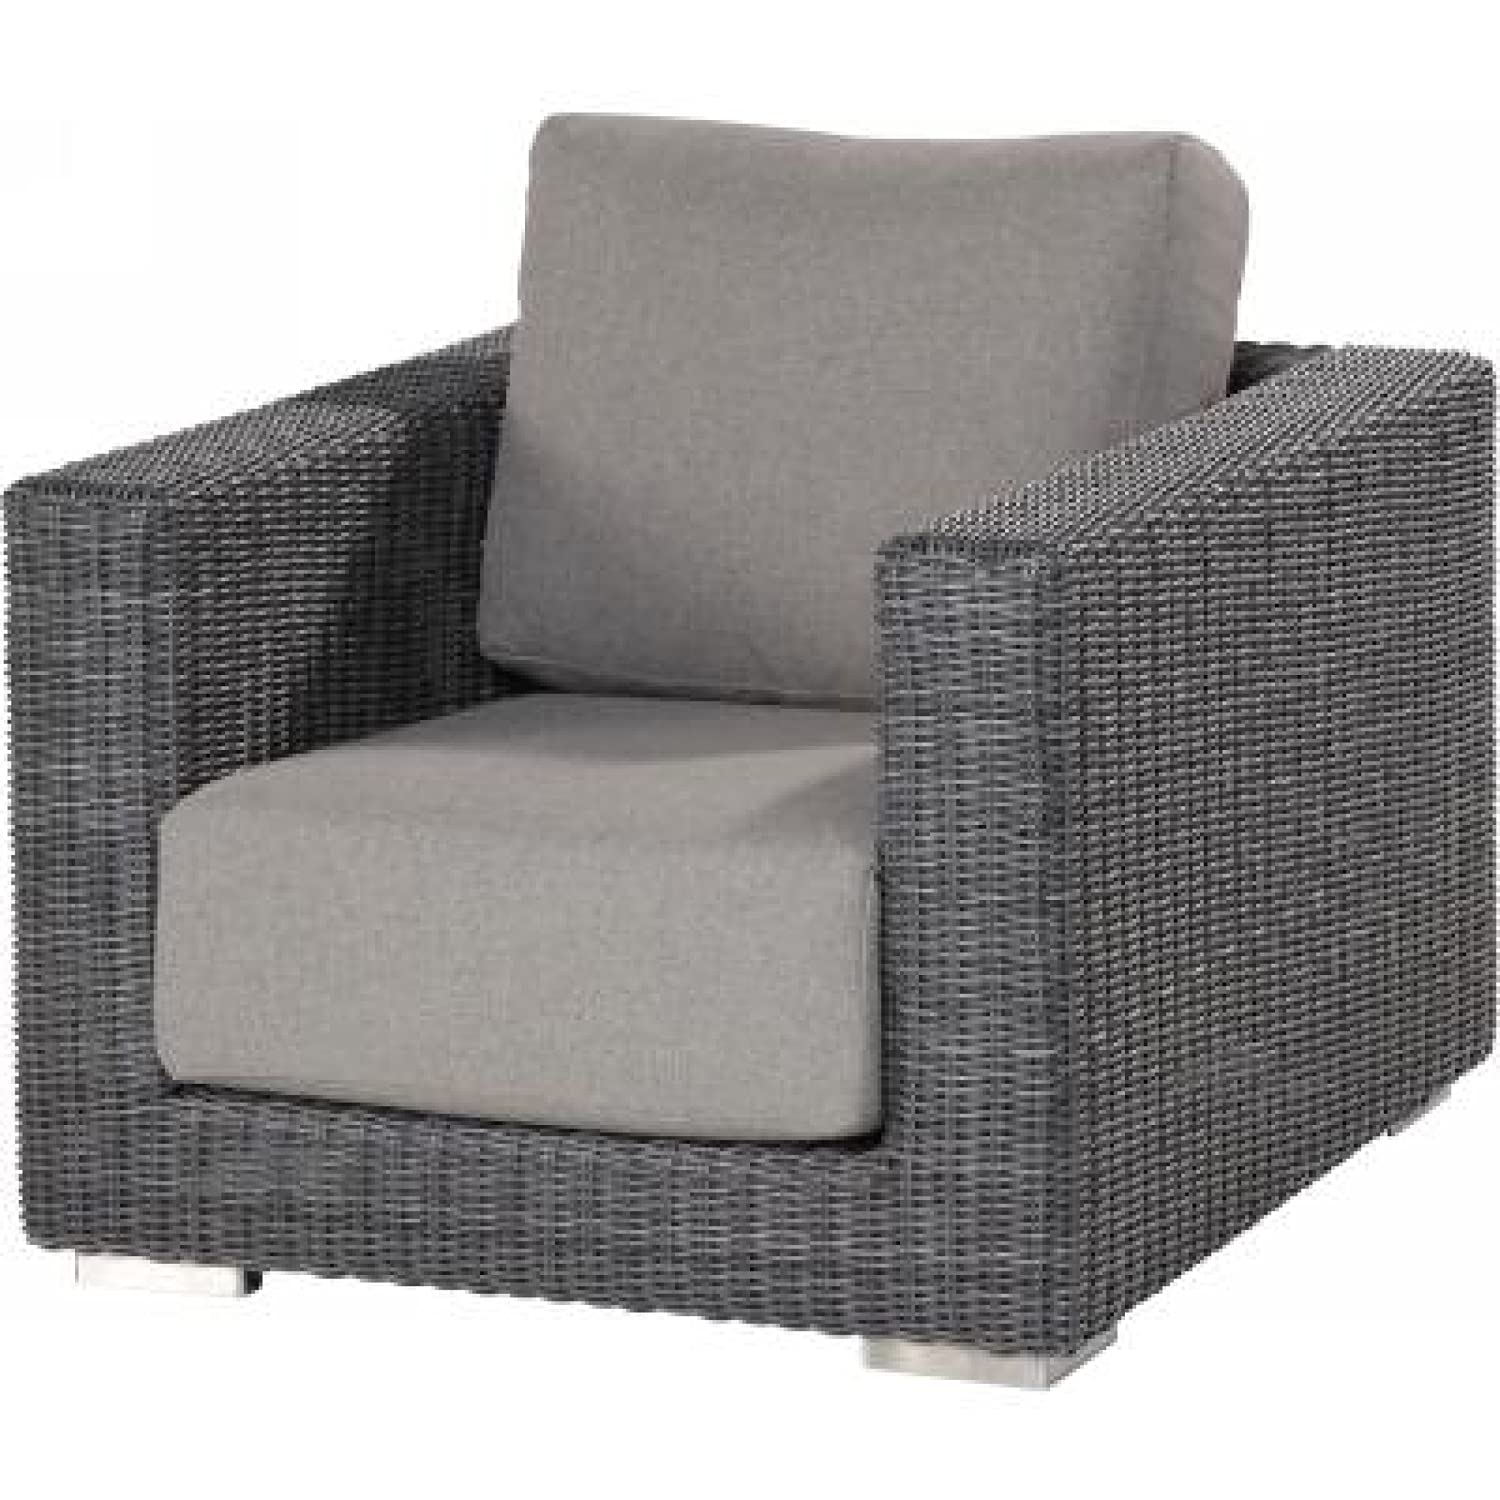 4Seasons Outdoor Somerset living Sessel Korbsessel Polyrattan charcoal wicker